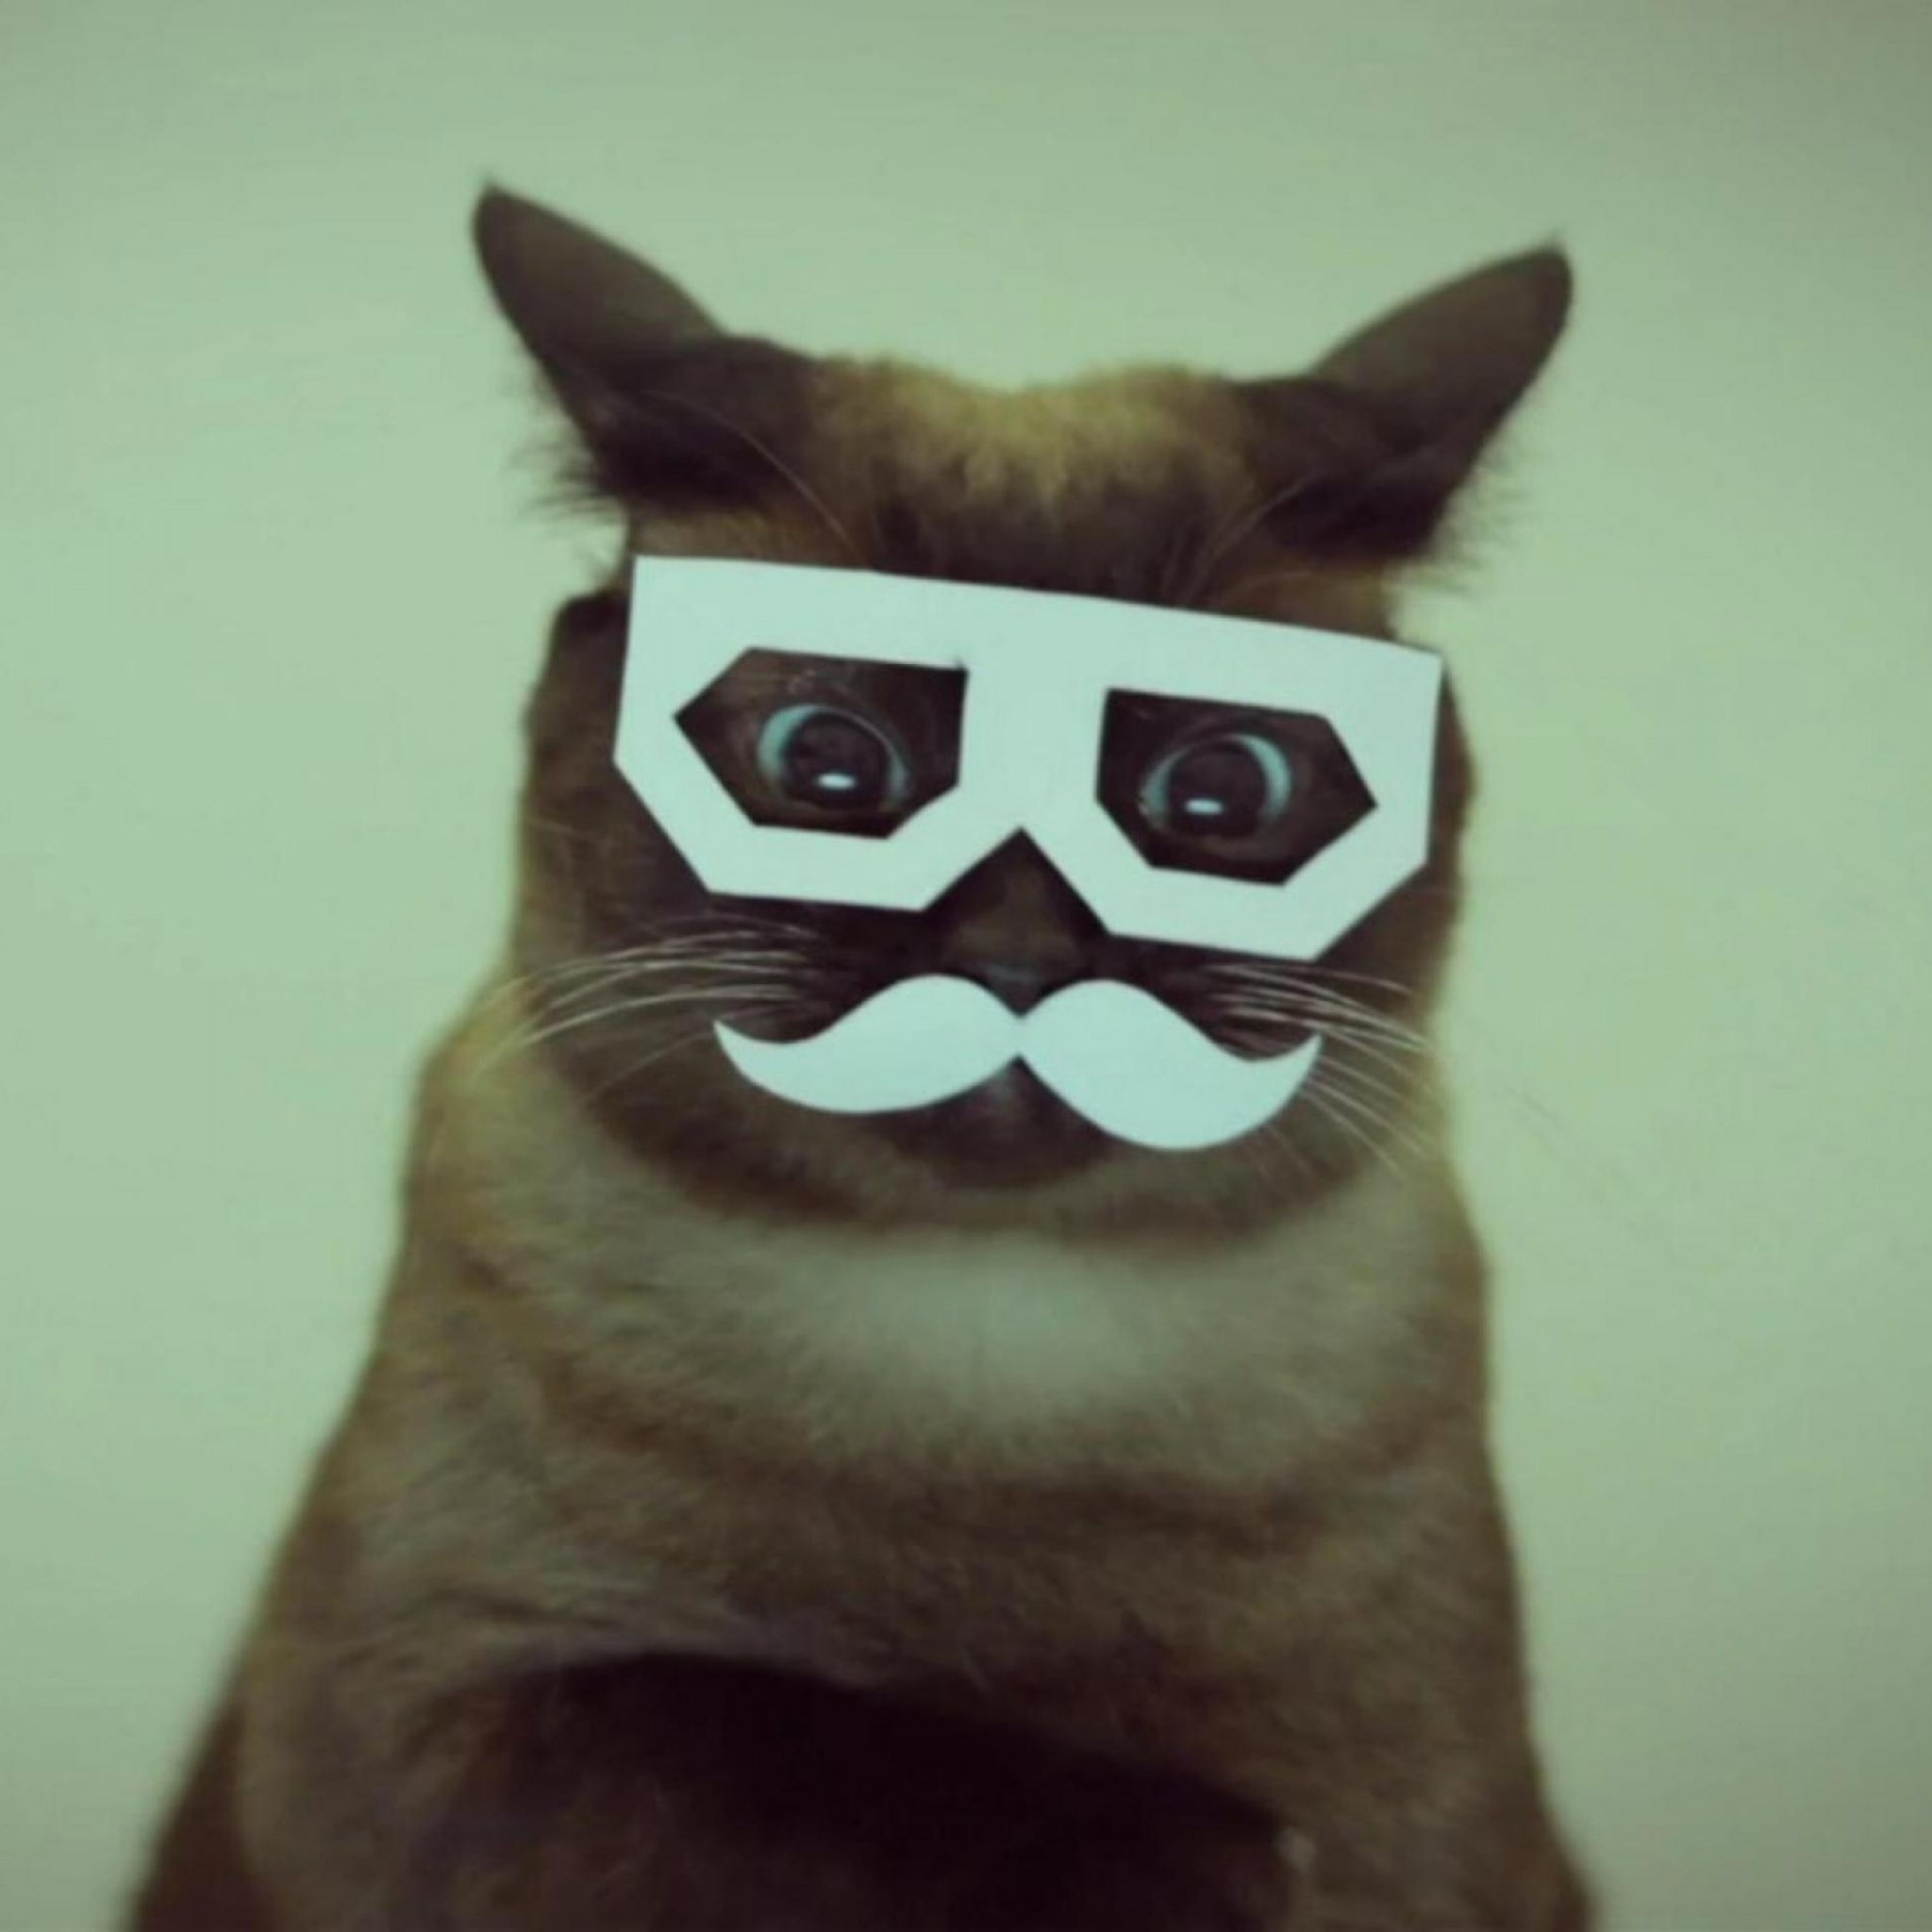 2048x2048 Funny Cat Moustache Glasses Ipad 3 Wallpaper And 4 Cute